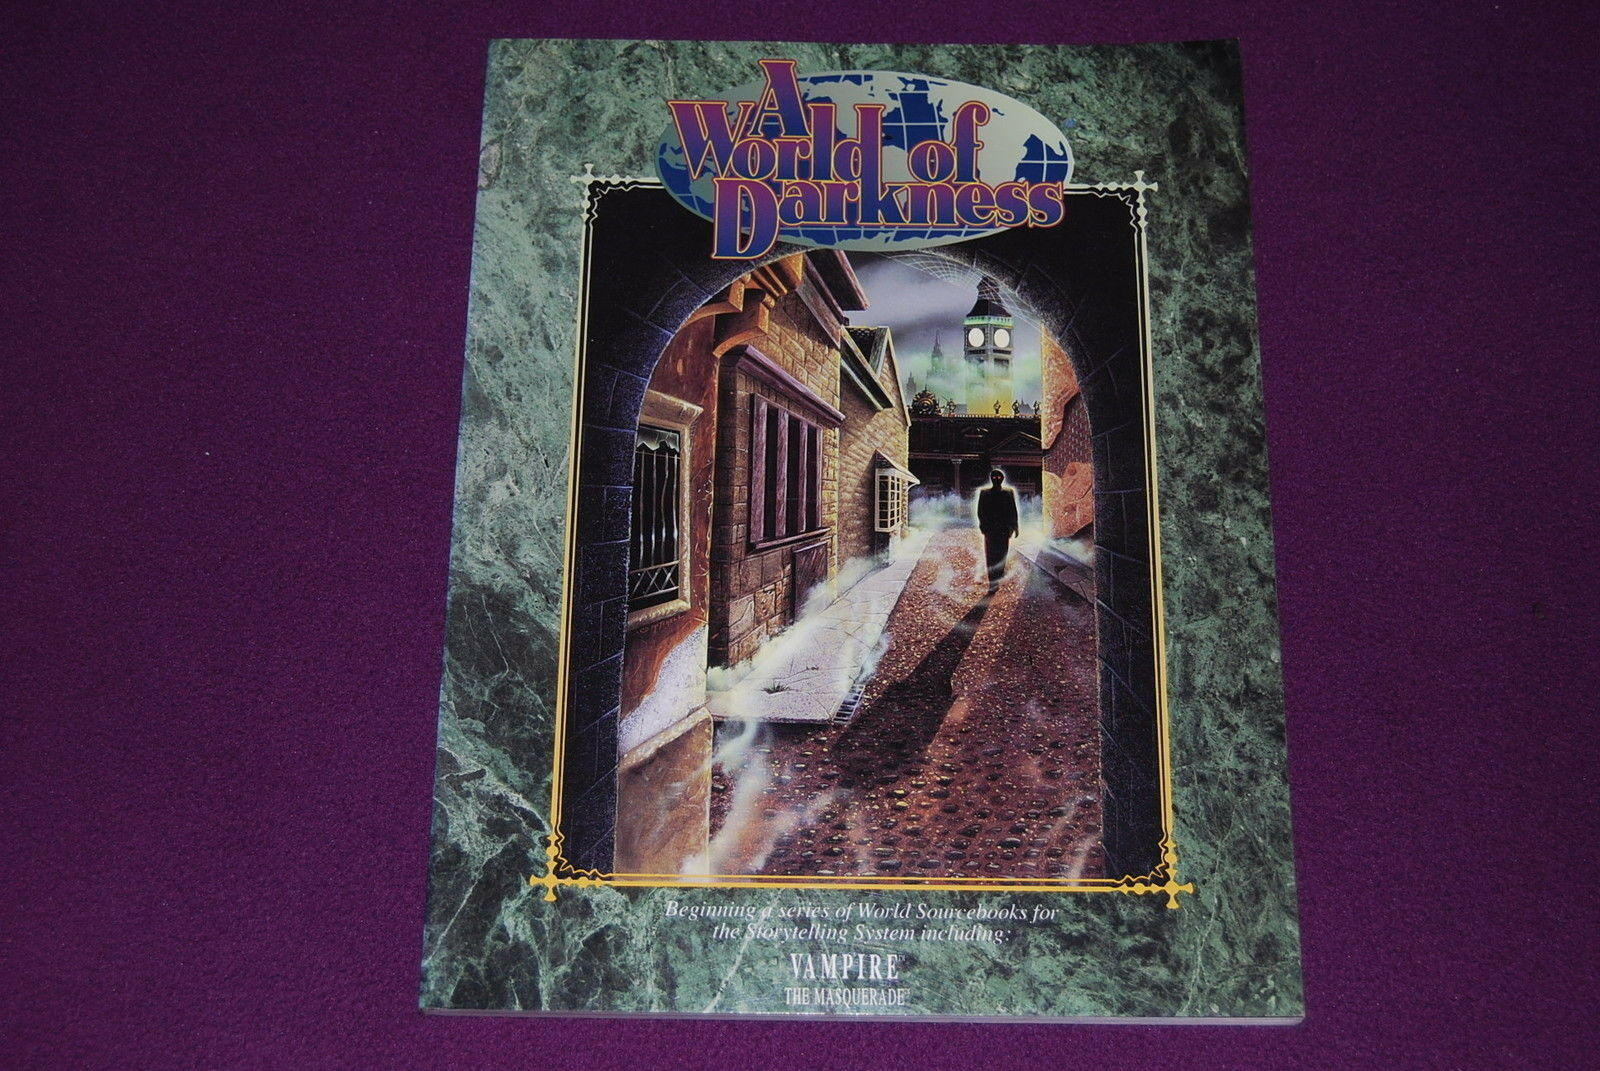 WORLD OF DARKNESS 1991 RPG JDR Jeu de Role - A World of Darkness 1ère Edition